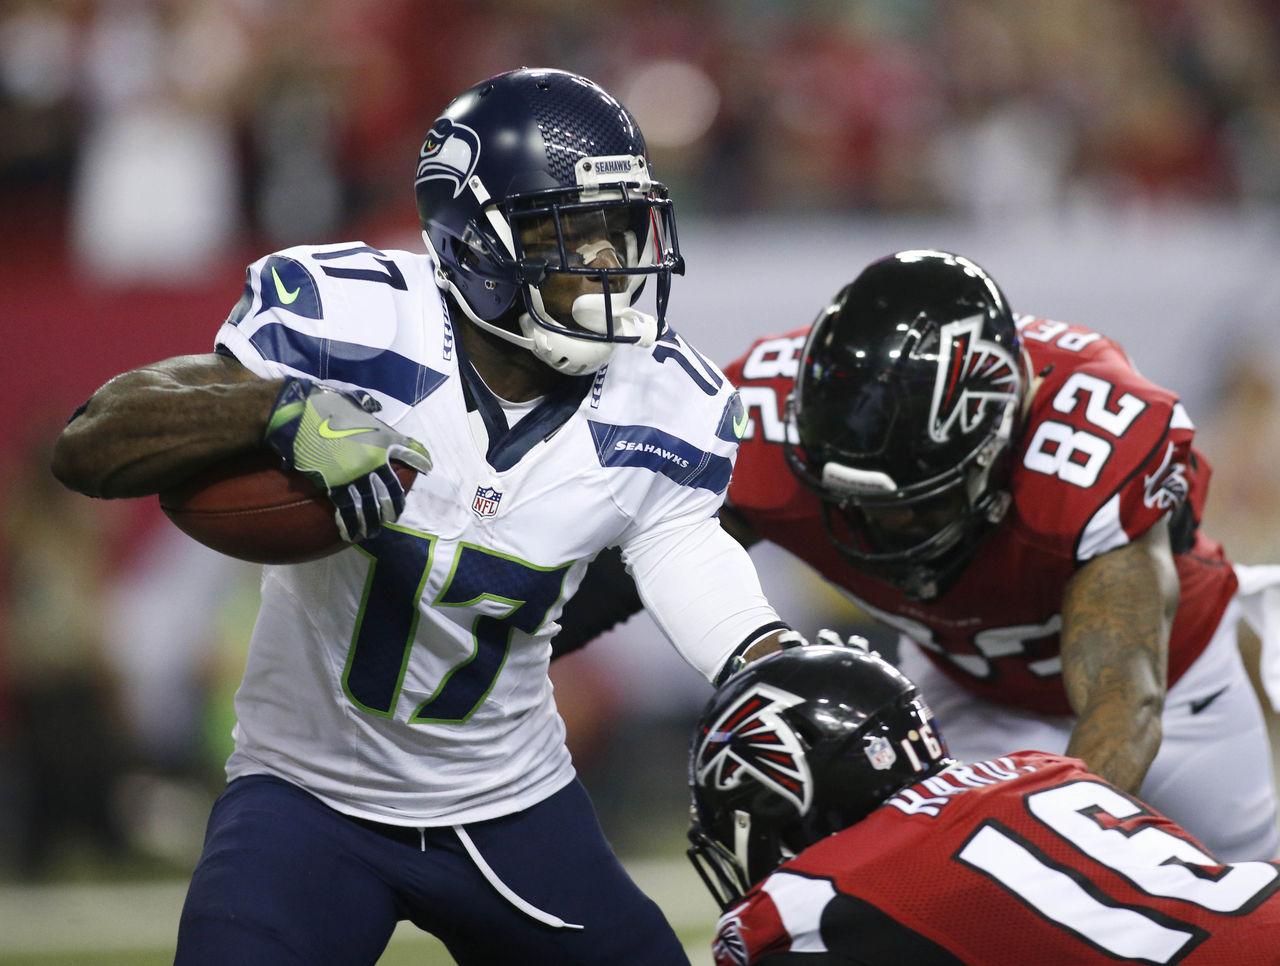 Cropped_2017-01-14t234536z_347828363_nocid_rtrmadp_3_nfl-nfc-divisional-seattle-seahawks-at-atlanta-falcons__1_